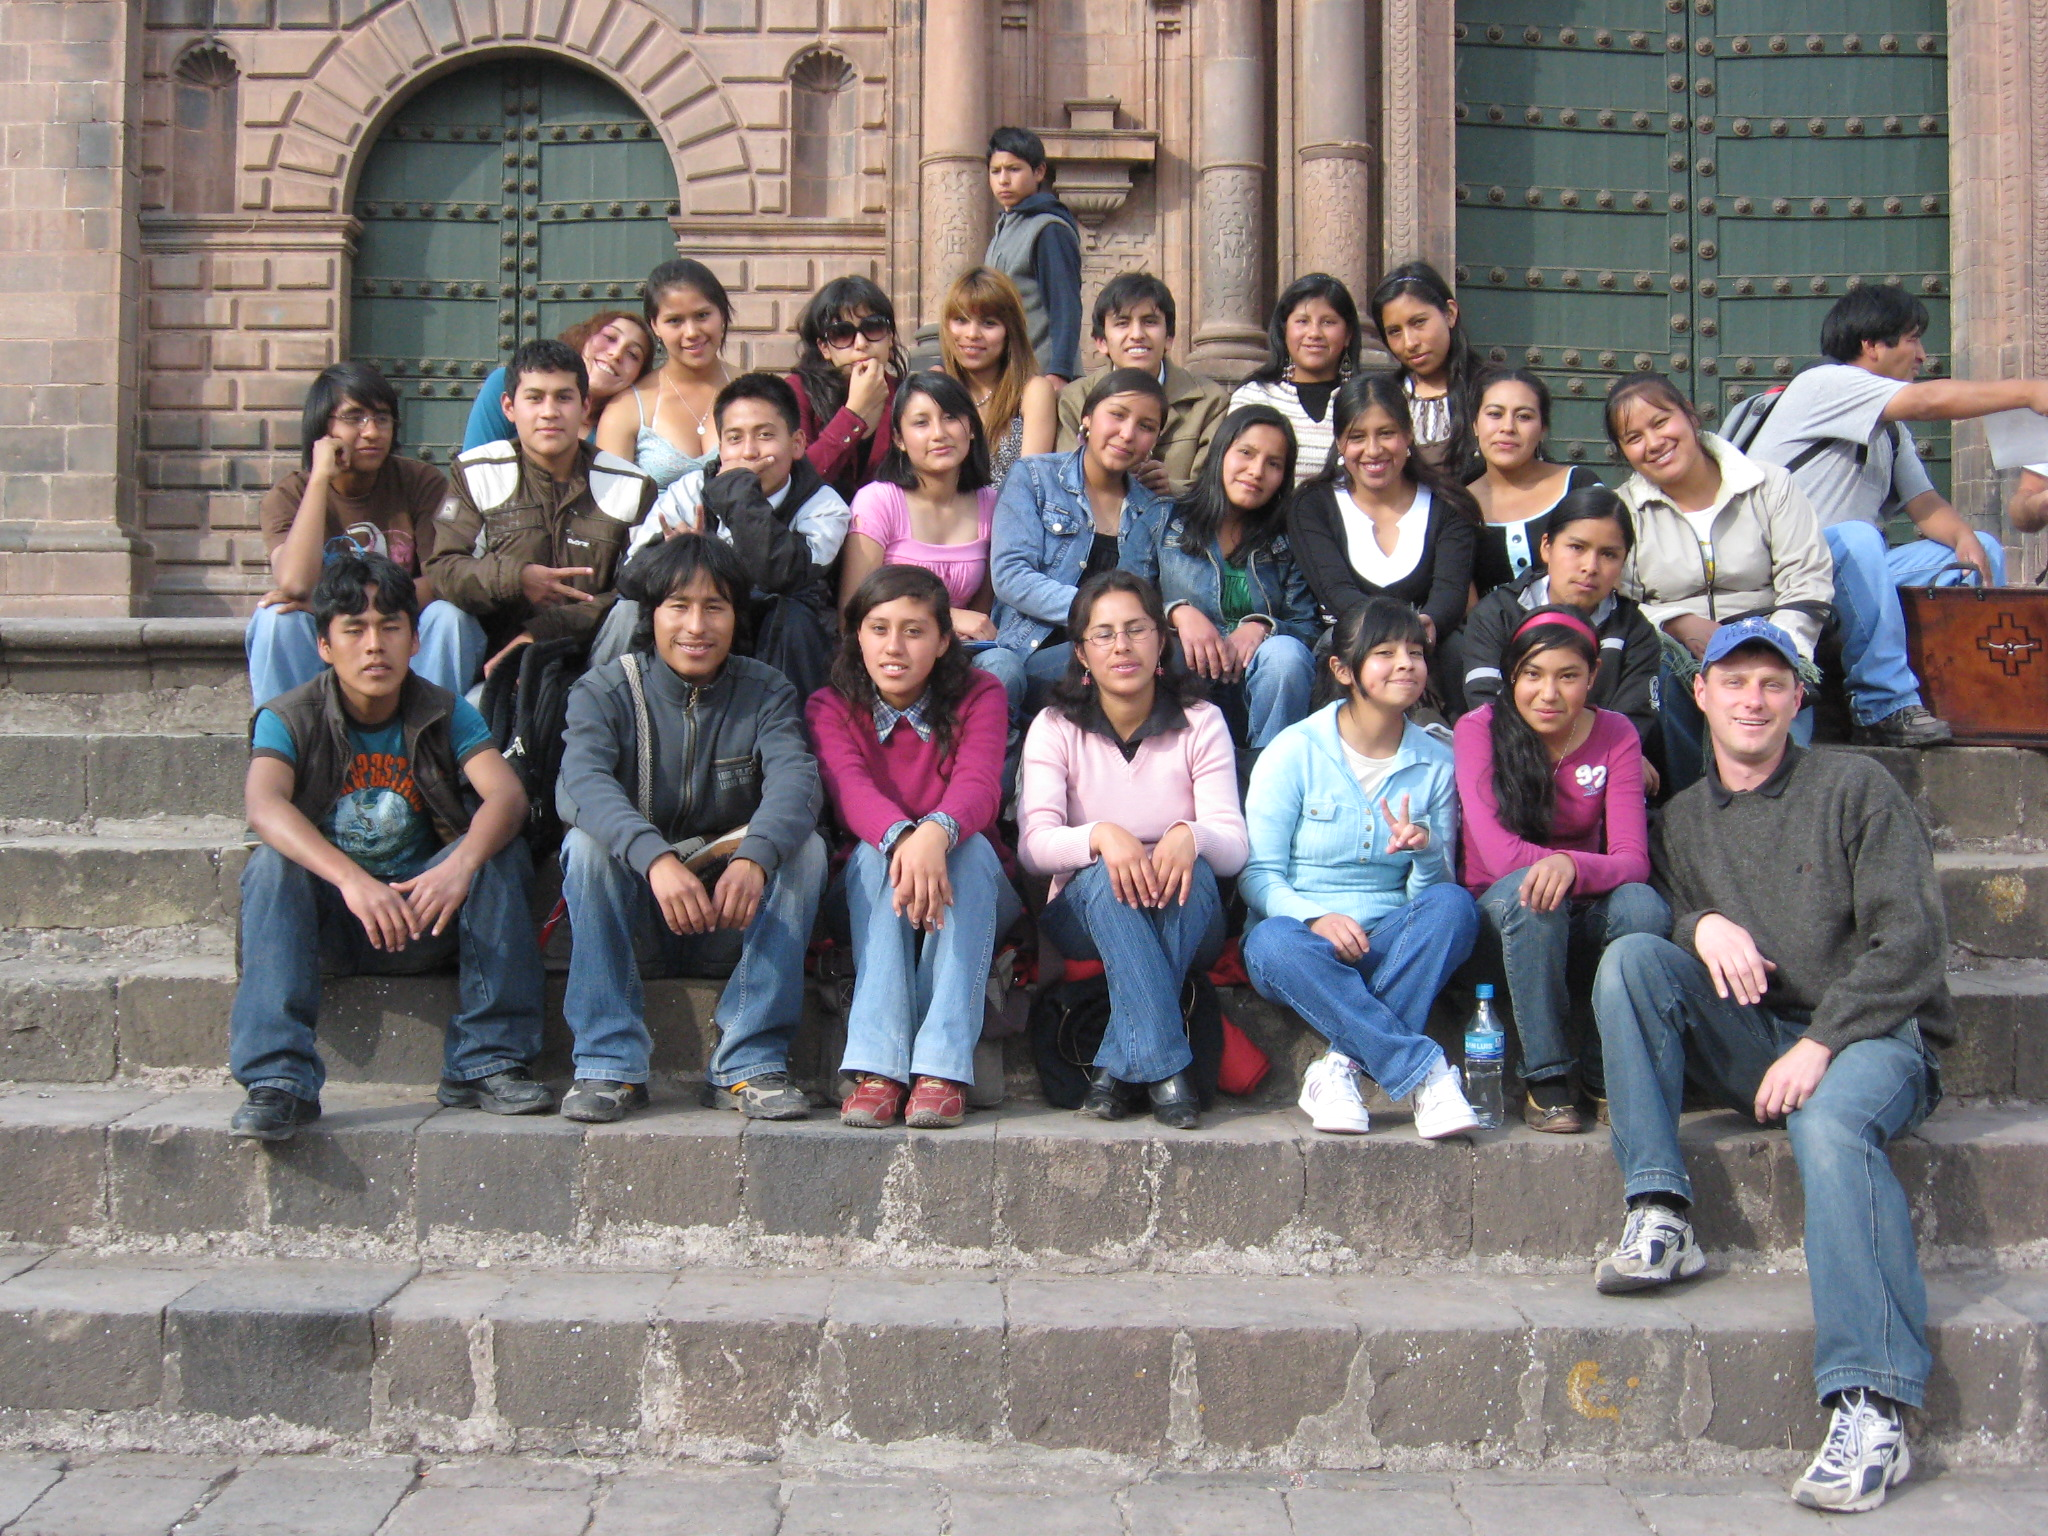 ESL students and me, in jeans and sneakers